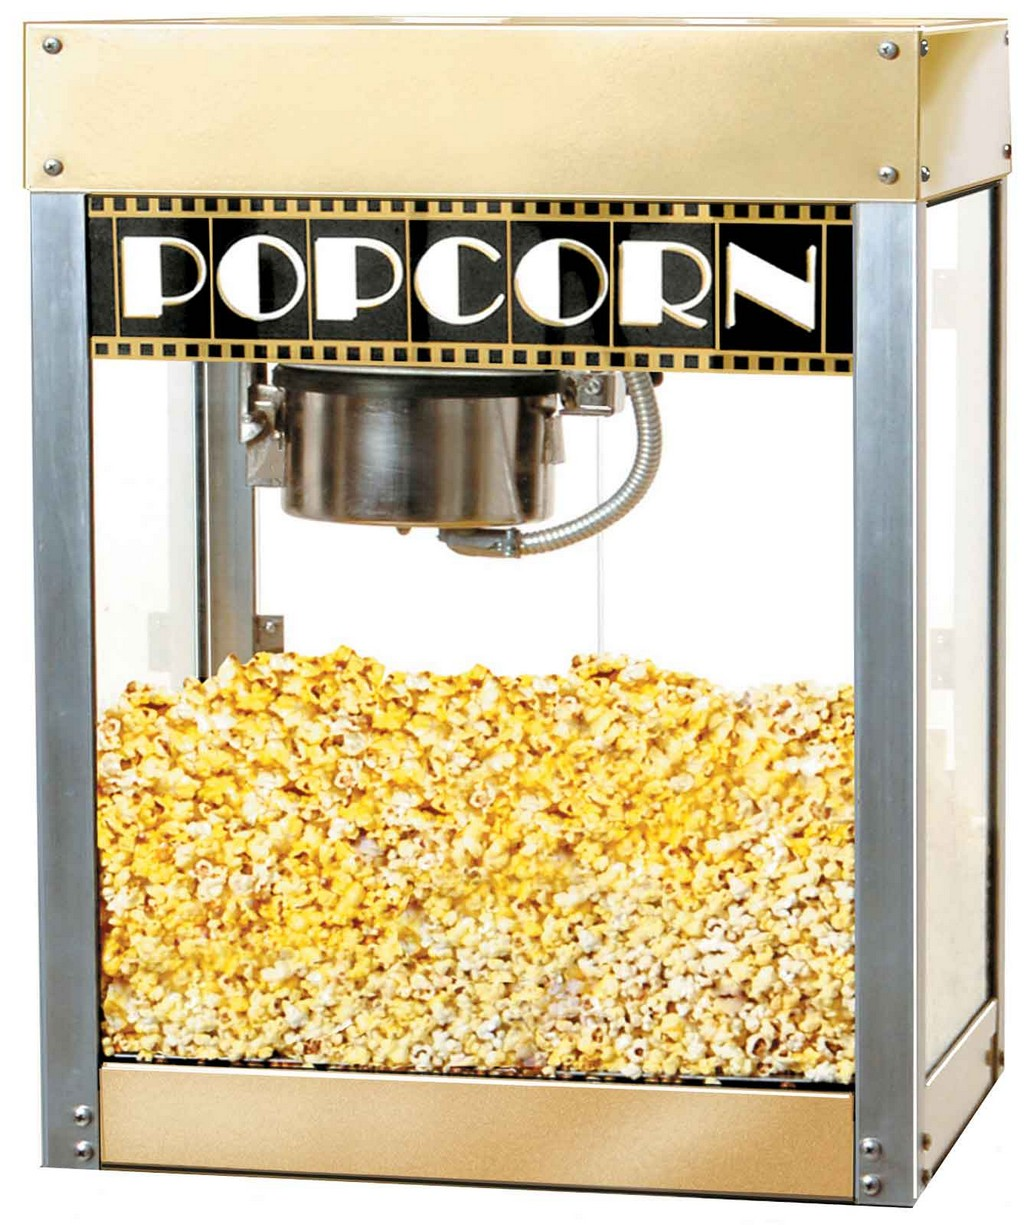 popcorn machine rental, commercial popcorn machine for sale, discount popcorn machine